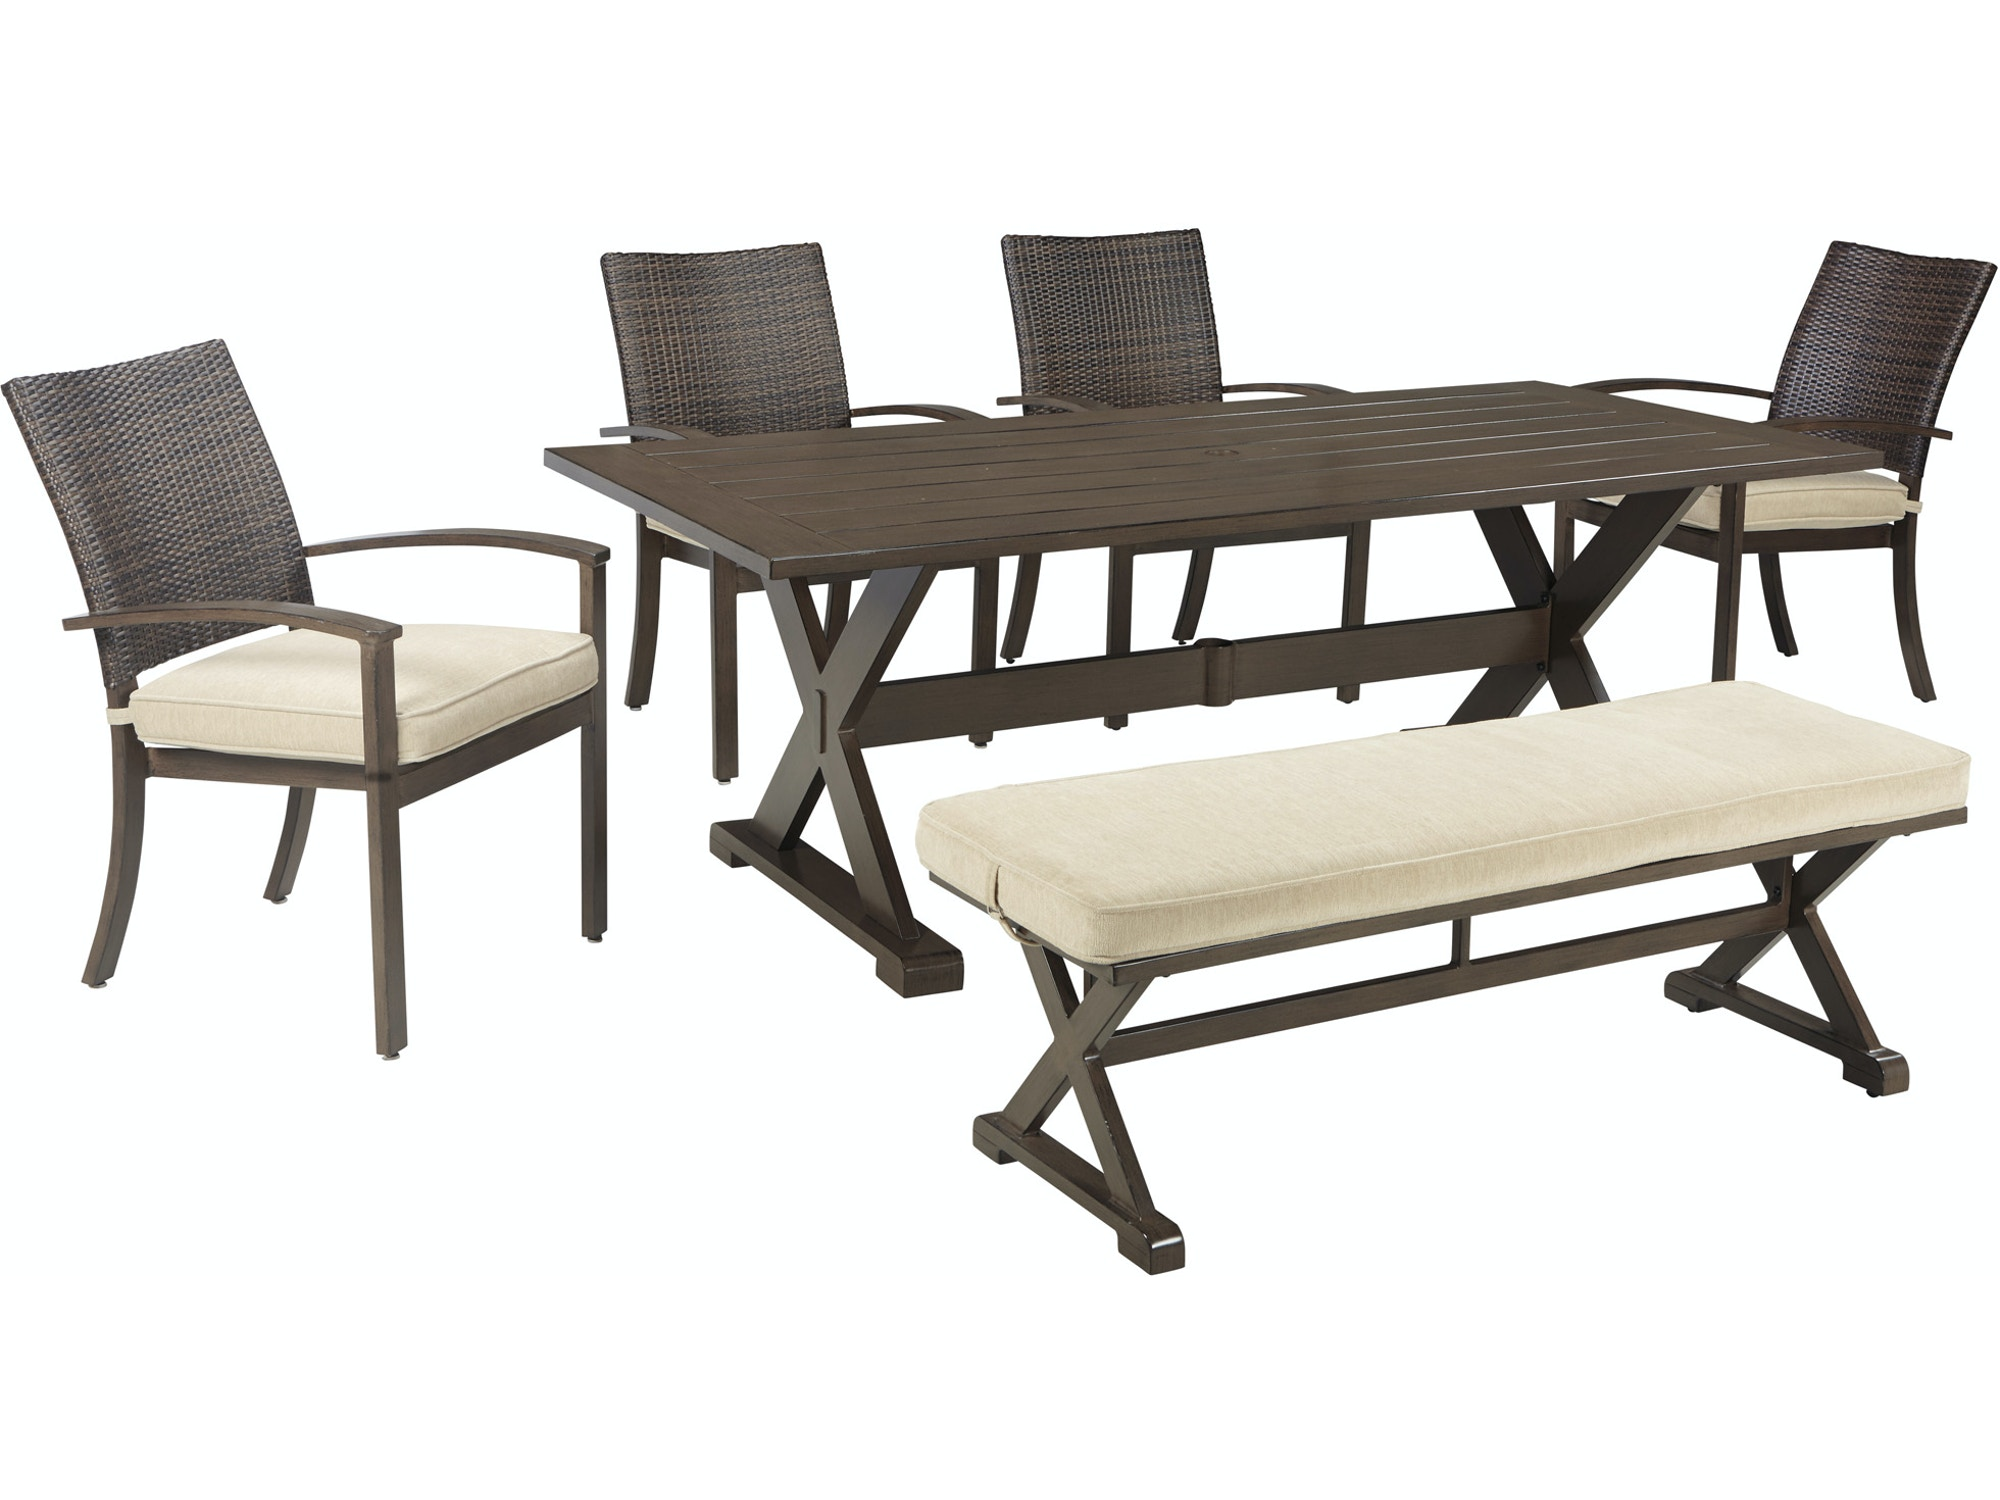 Moresdale Bench Dining Set 603176